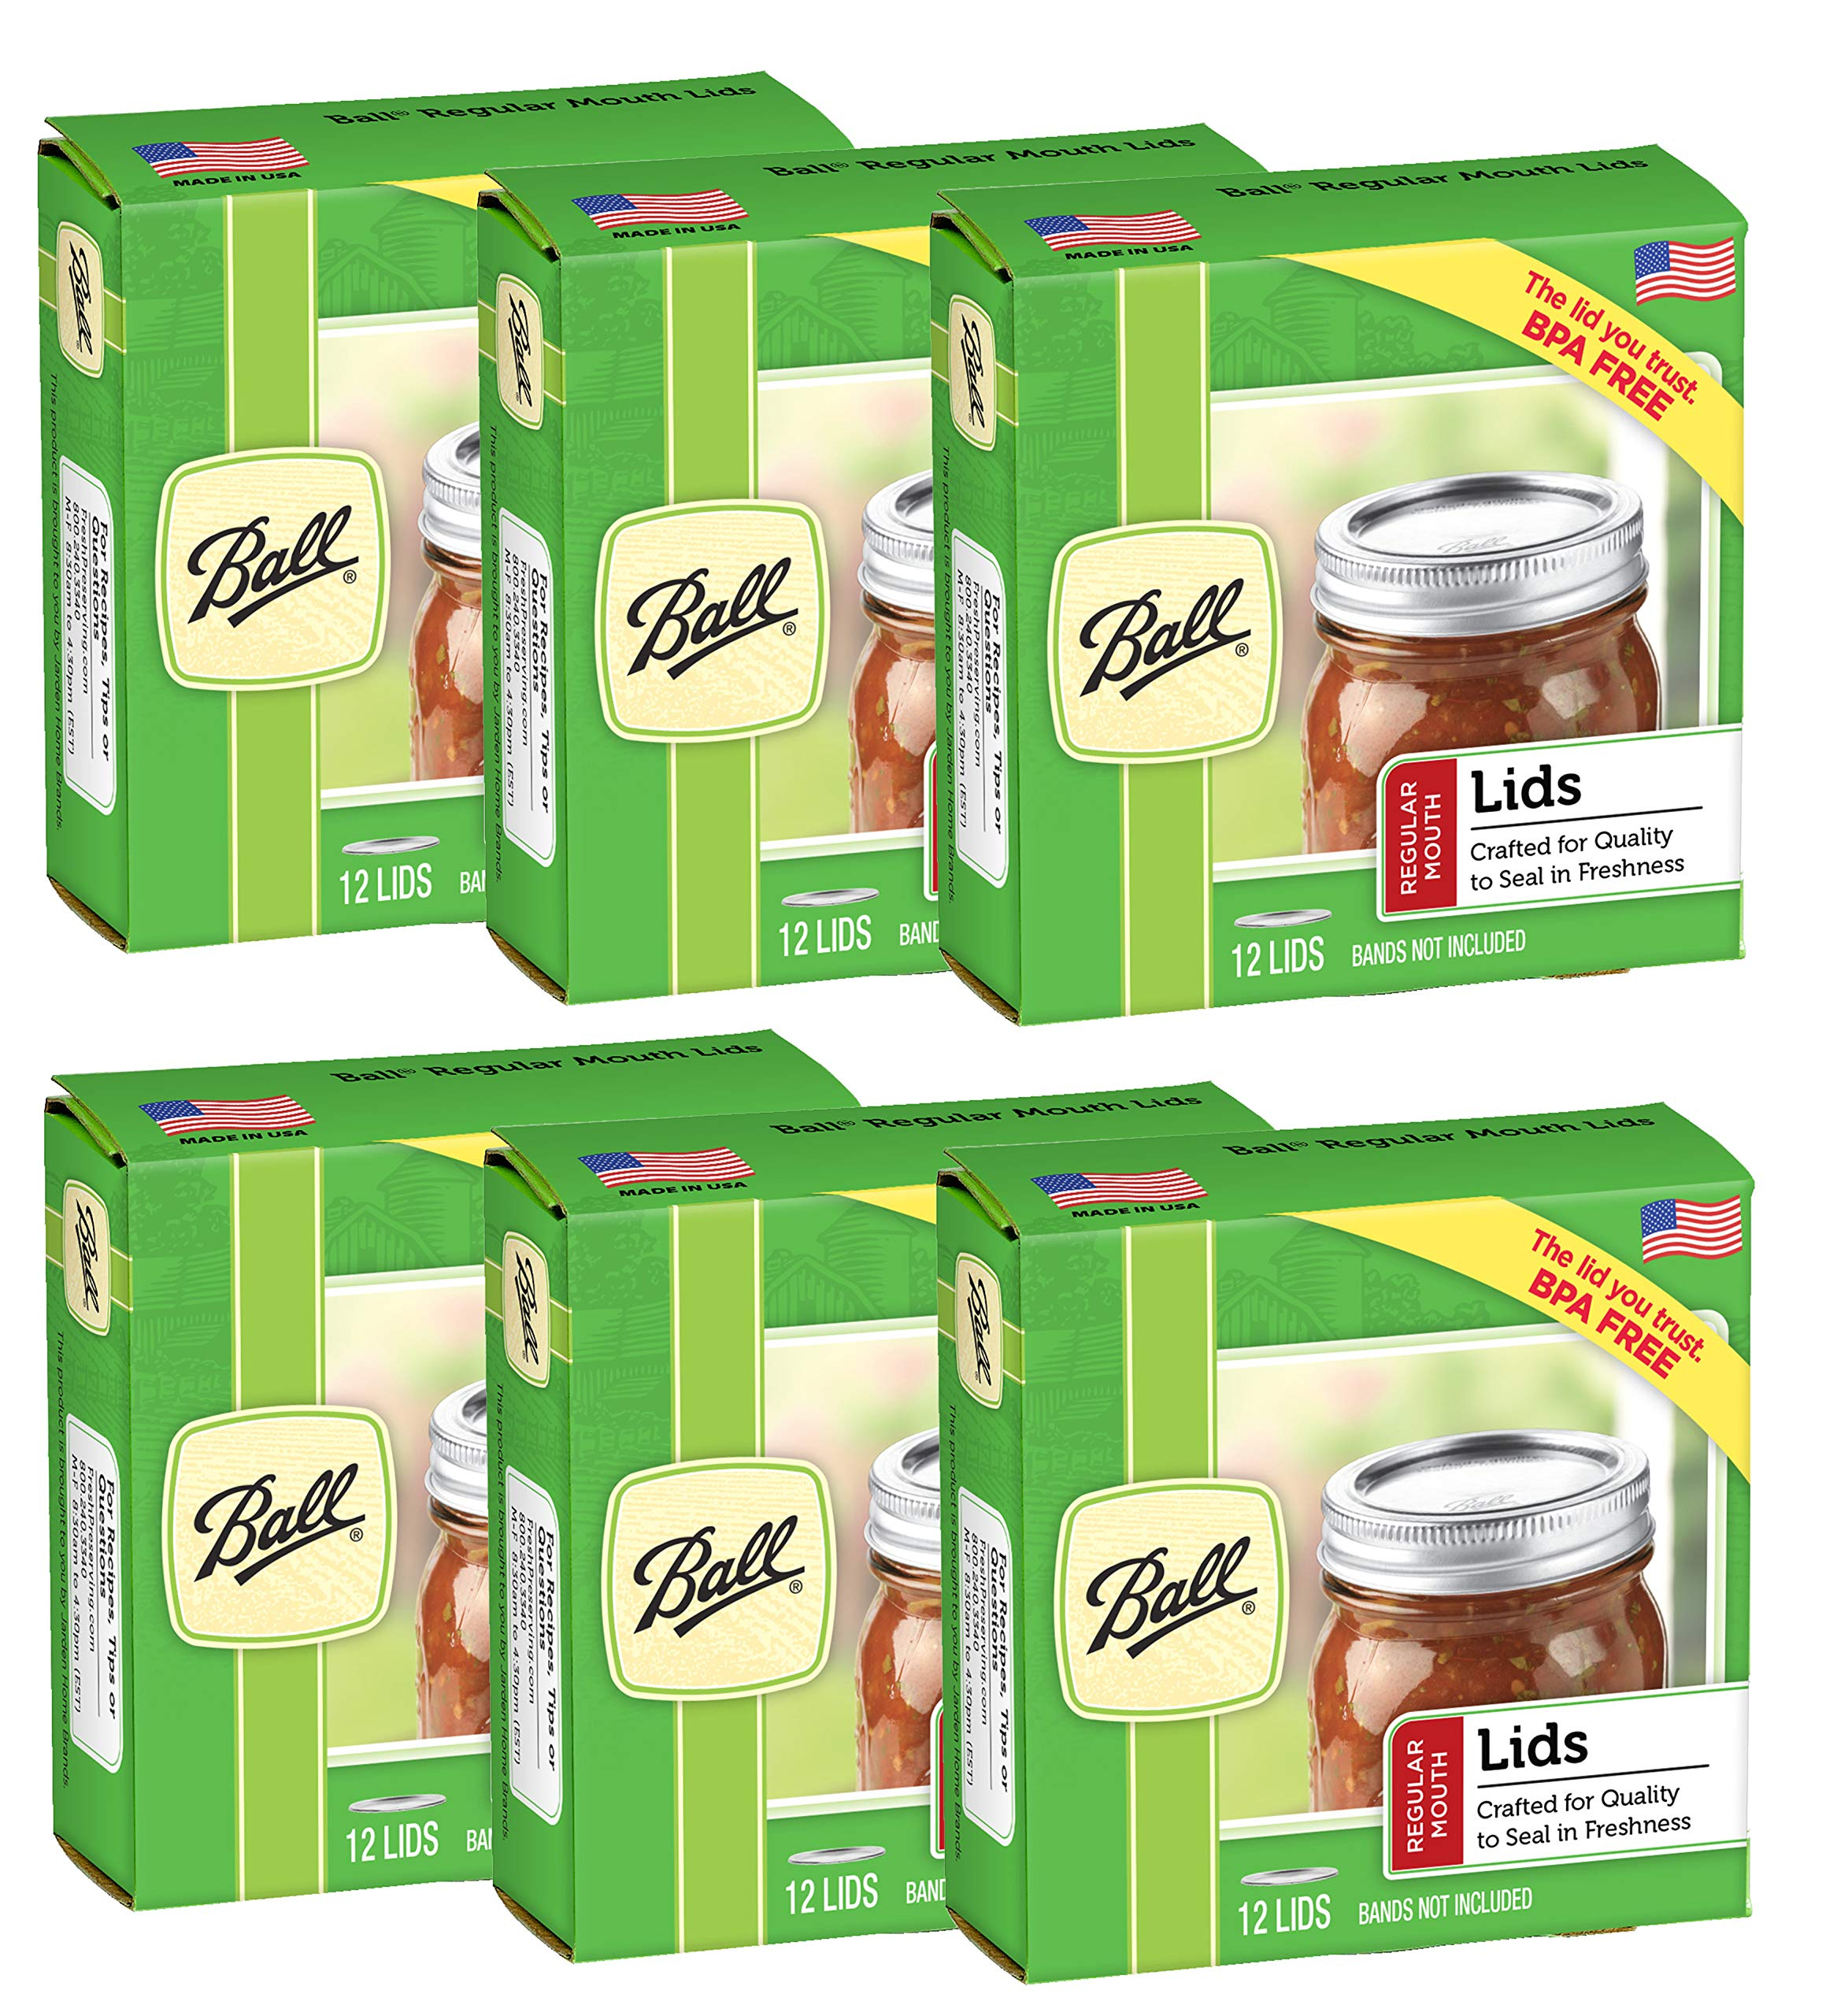 Ball Regular Mouth Jar Lids (6 Pack)